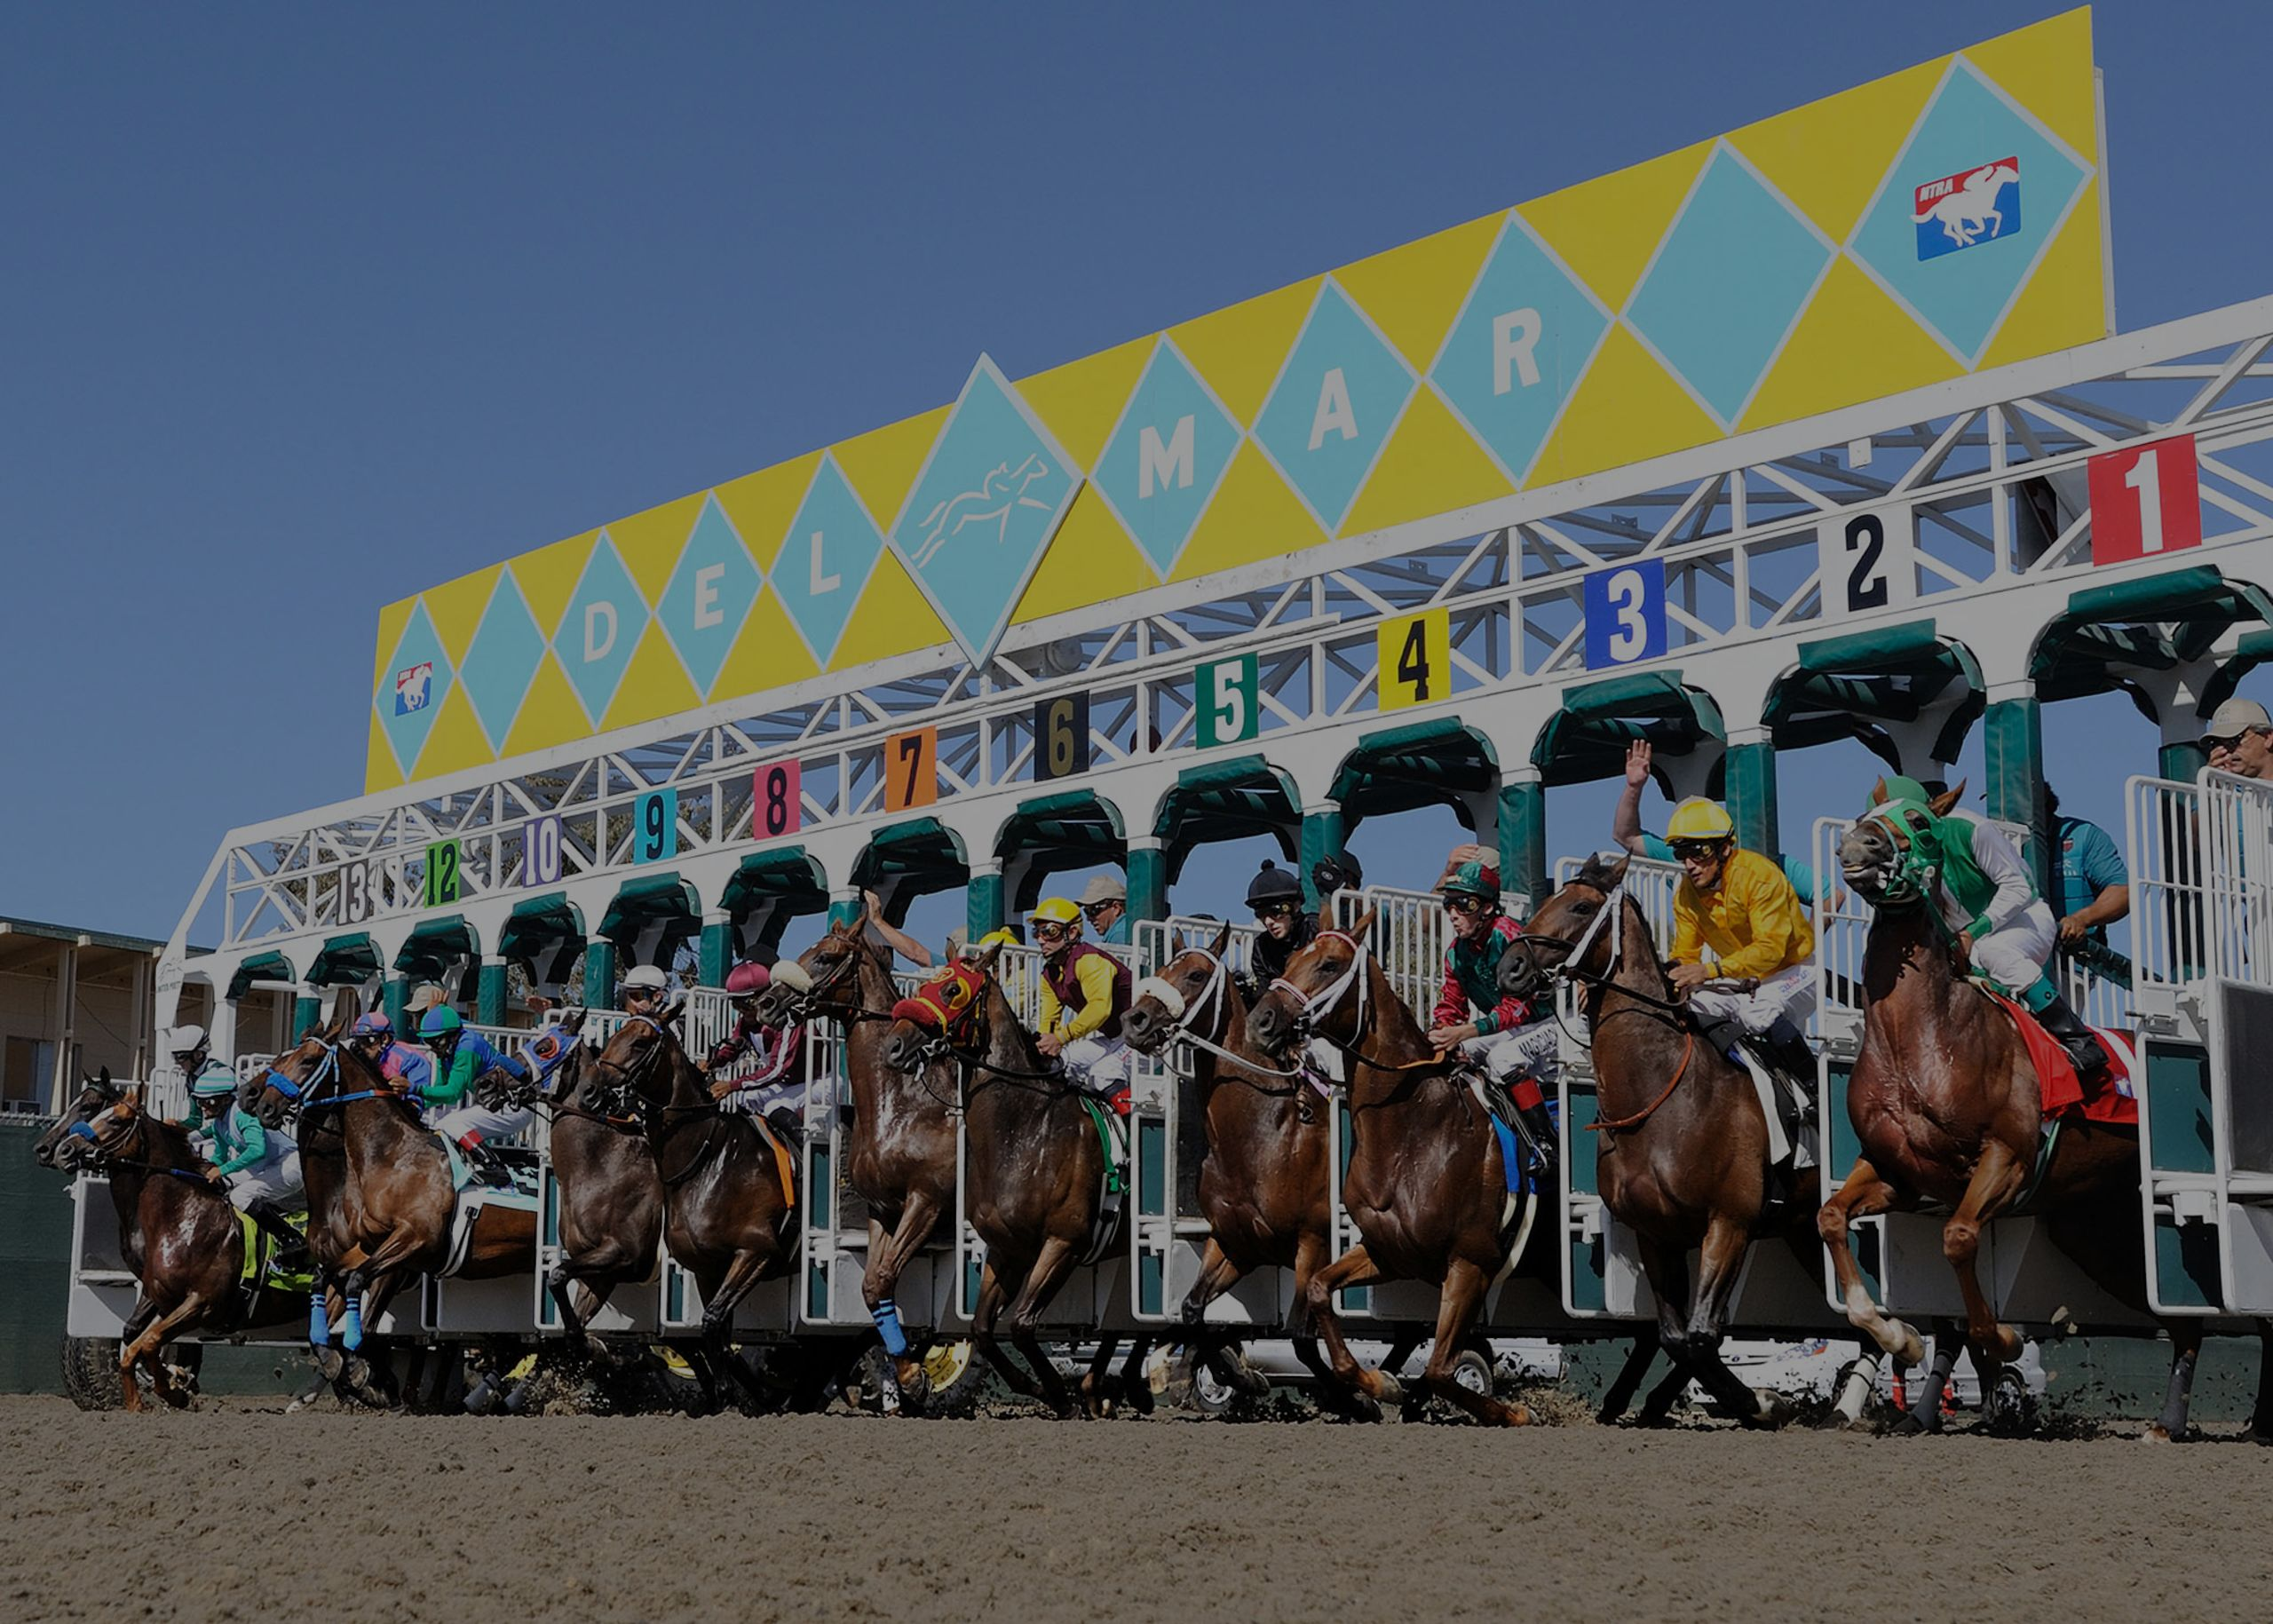 Opening Day in Del Mar